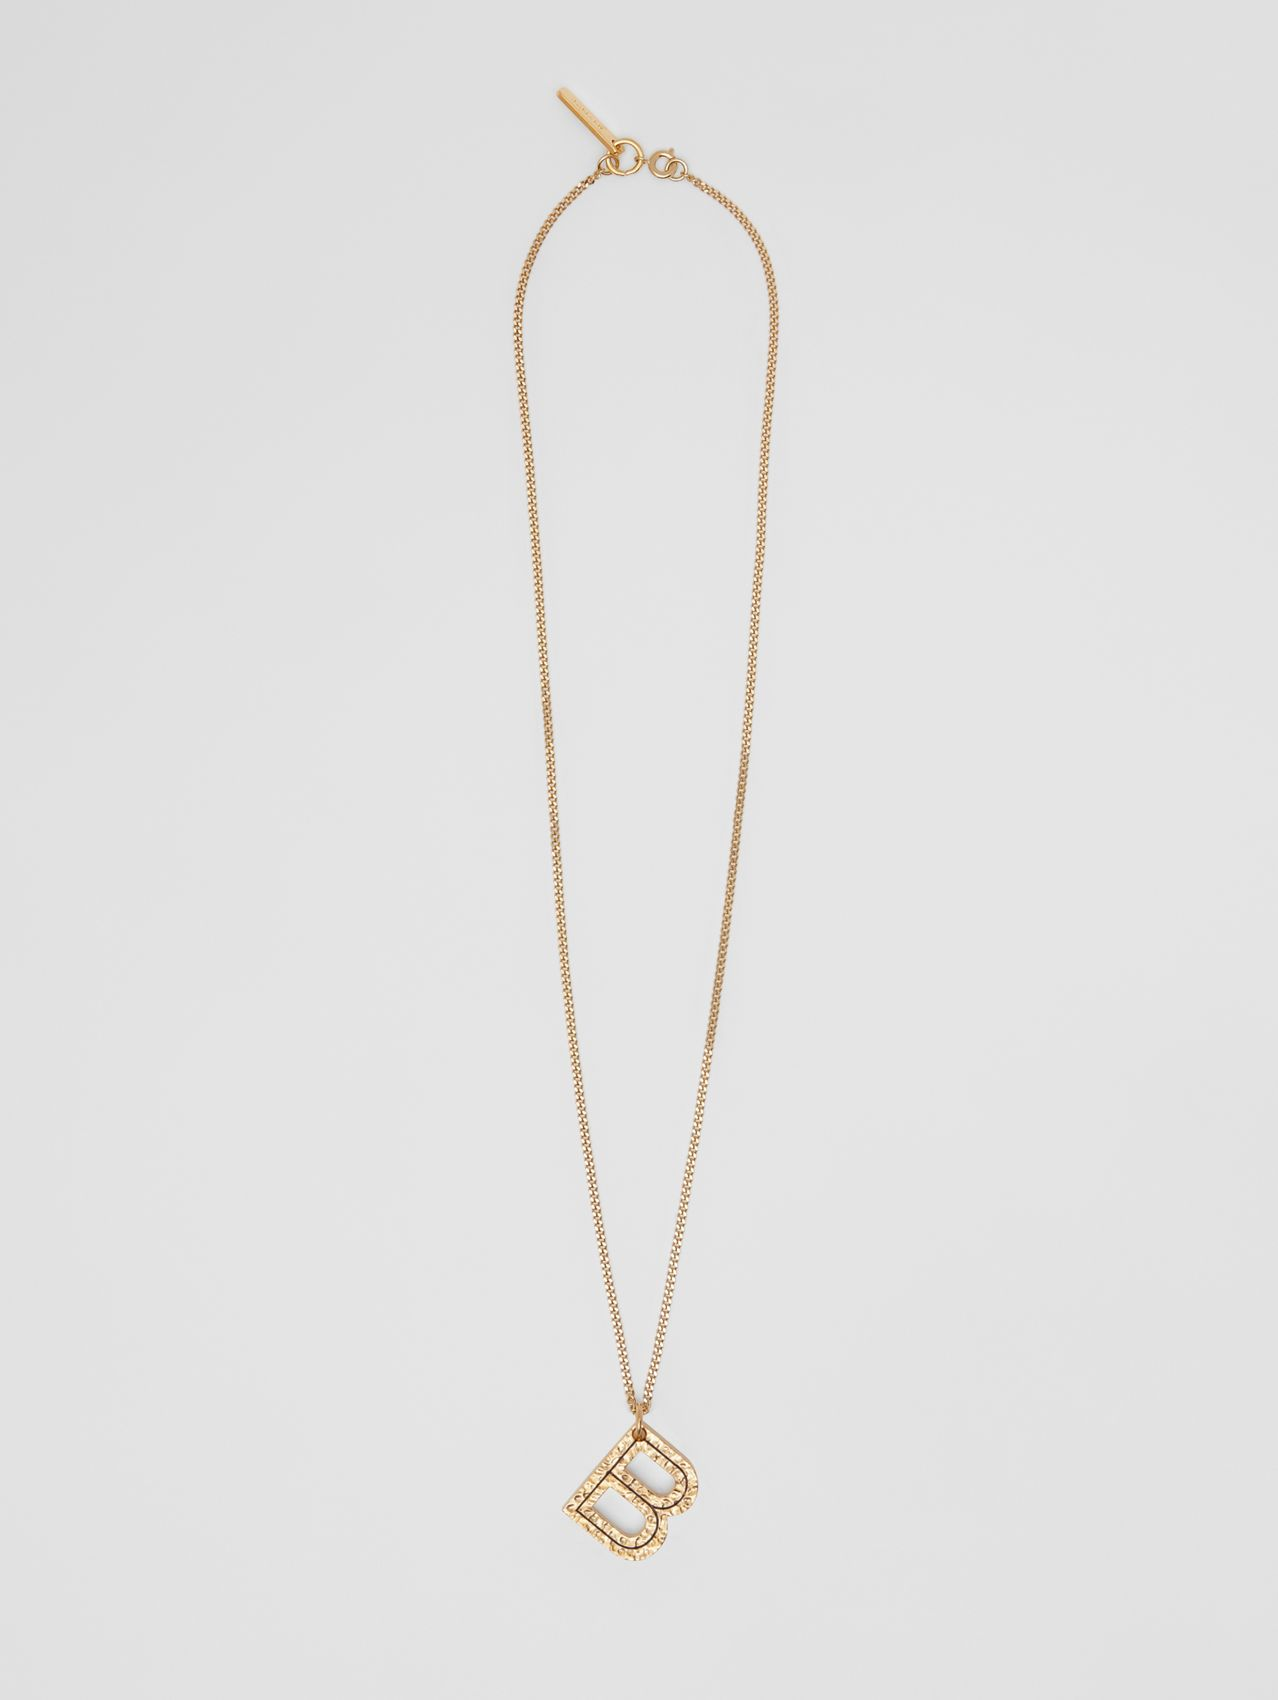 'B' Alphabet Charm Gold-plated Necklace in Light